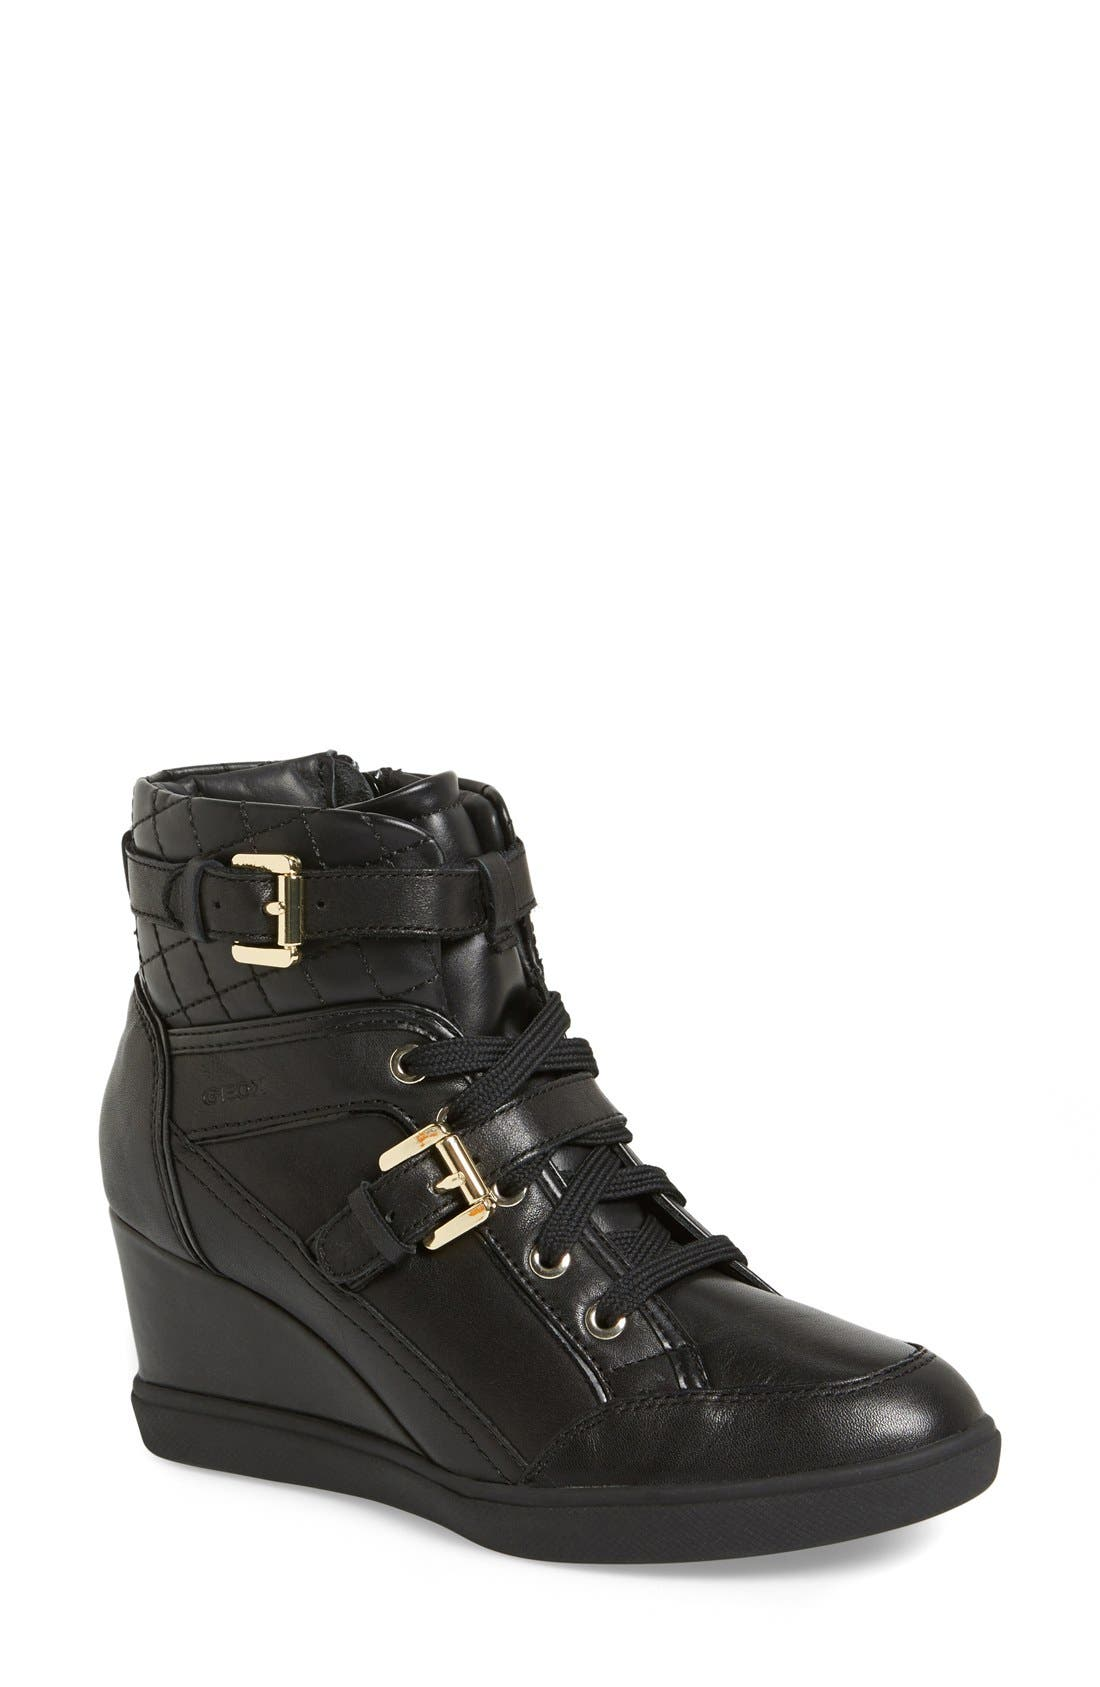 Alternate Image 1 Selected - Geox 'Eleni' Wedge Sneaker (Women)